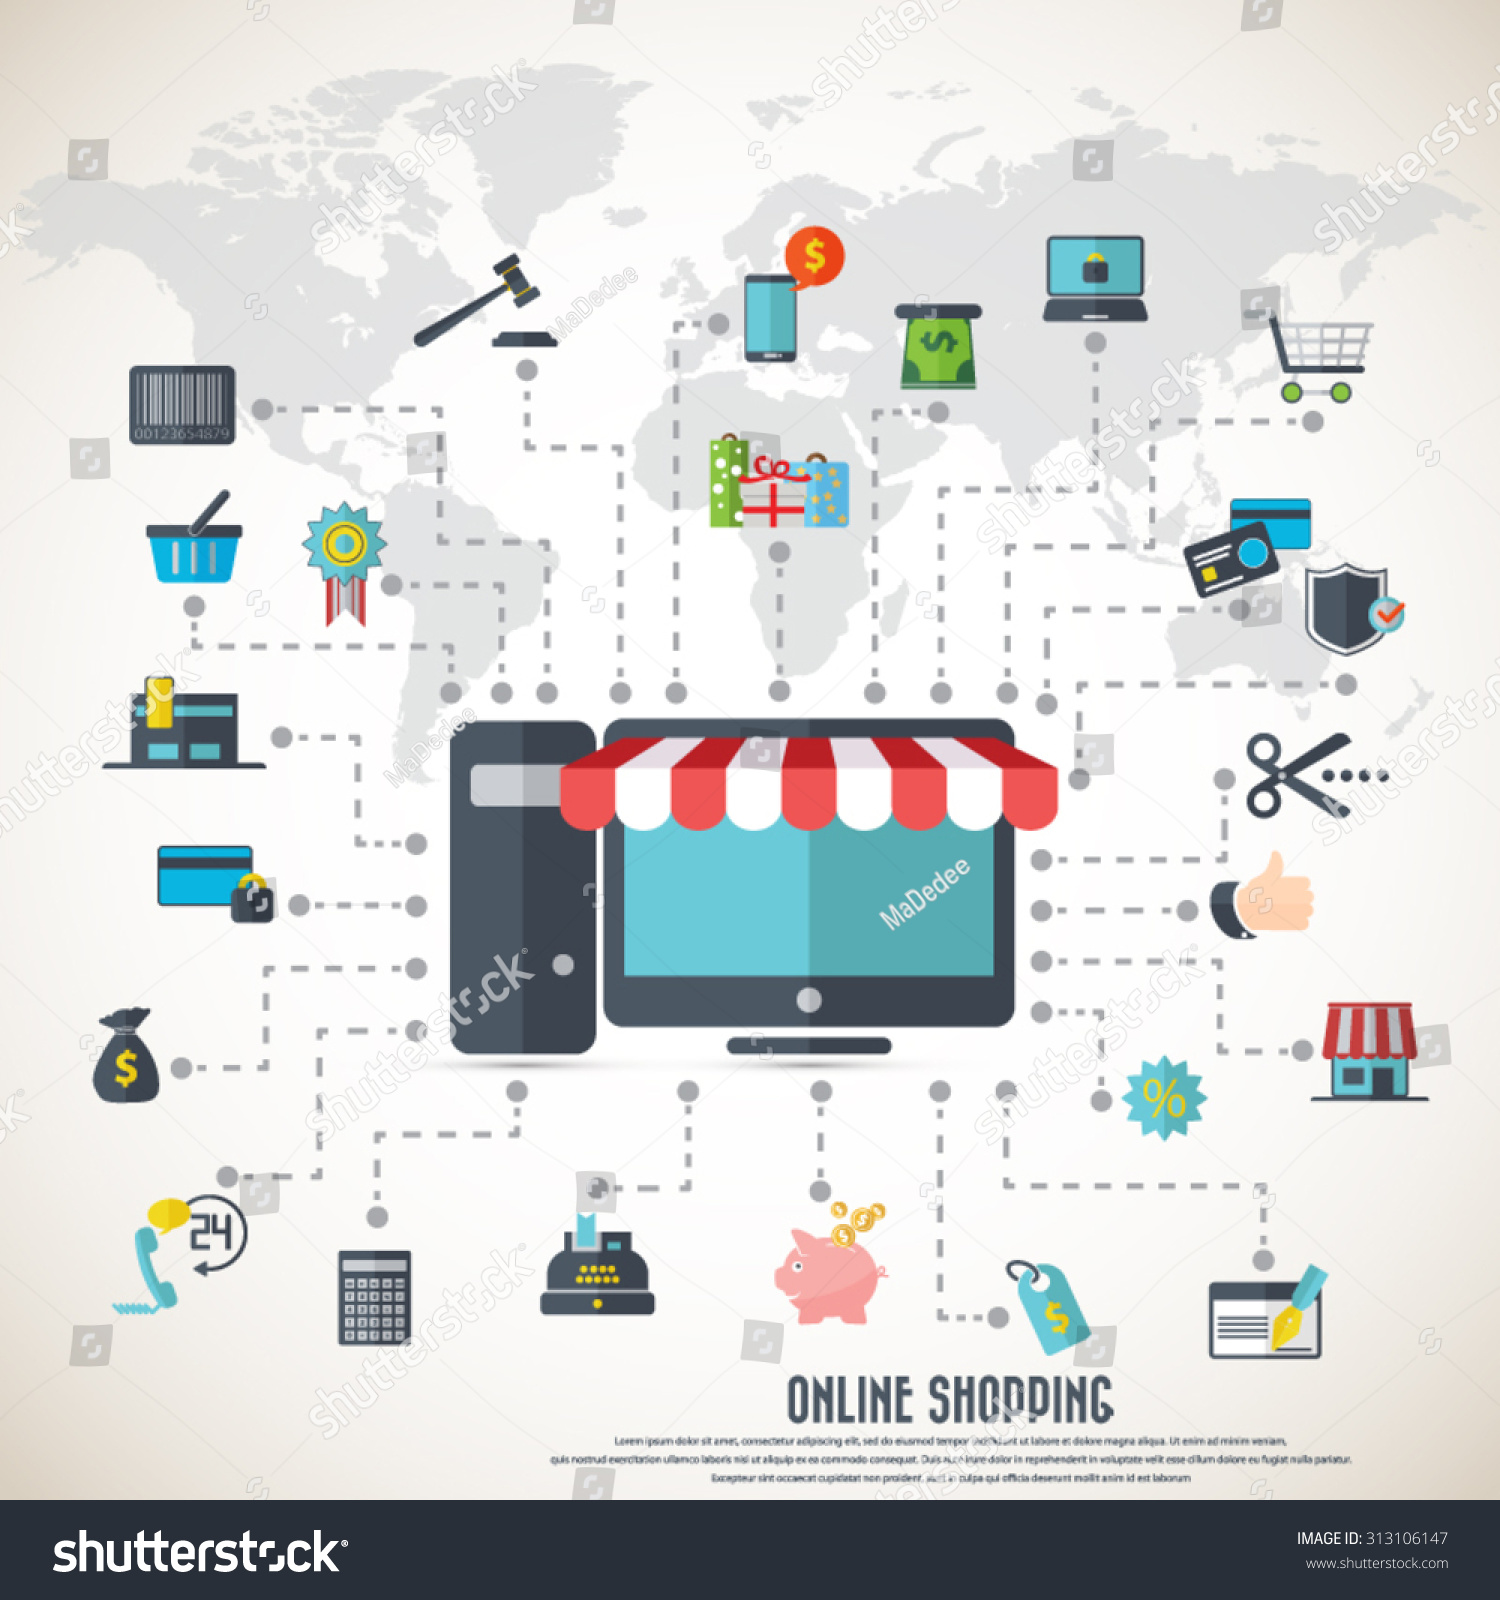 Online shopping desktop awning various icon stock vector 2018 online shopping desktop with awning various icon set and detailed world map eps10 gumiabroncs Images